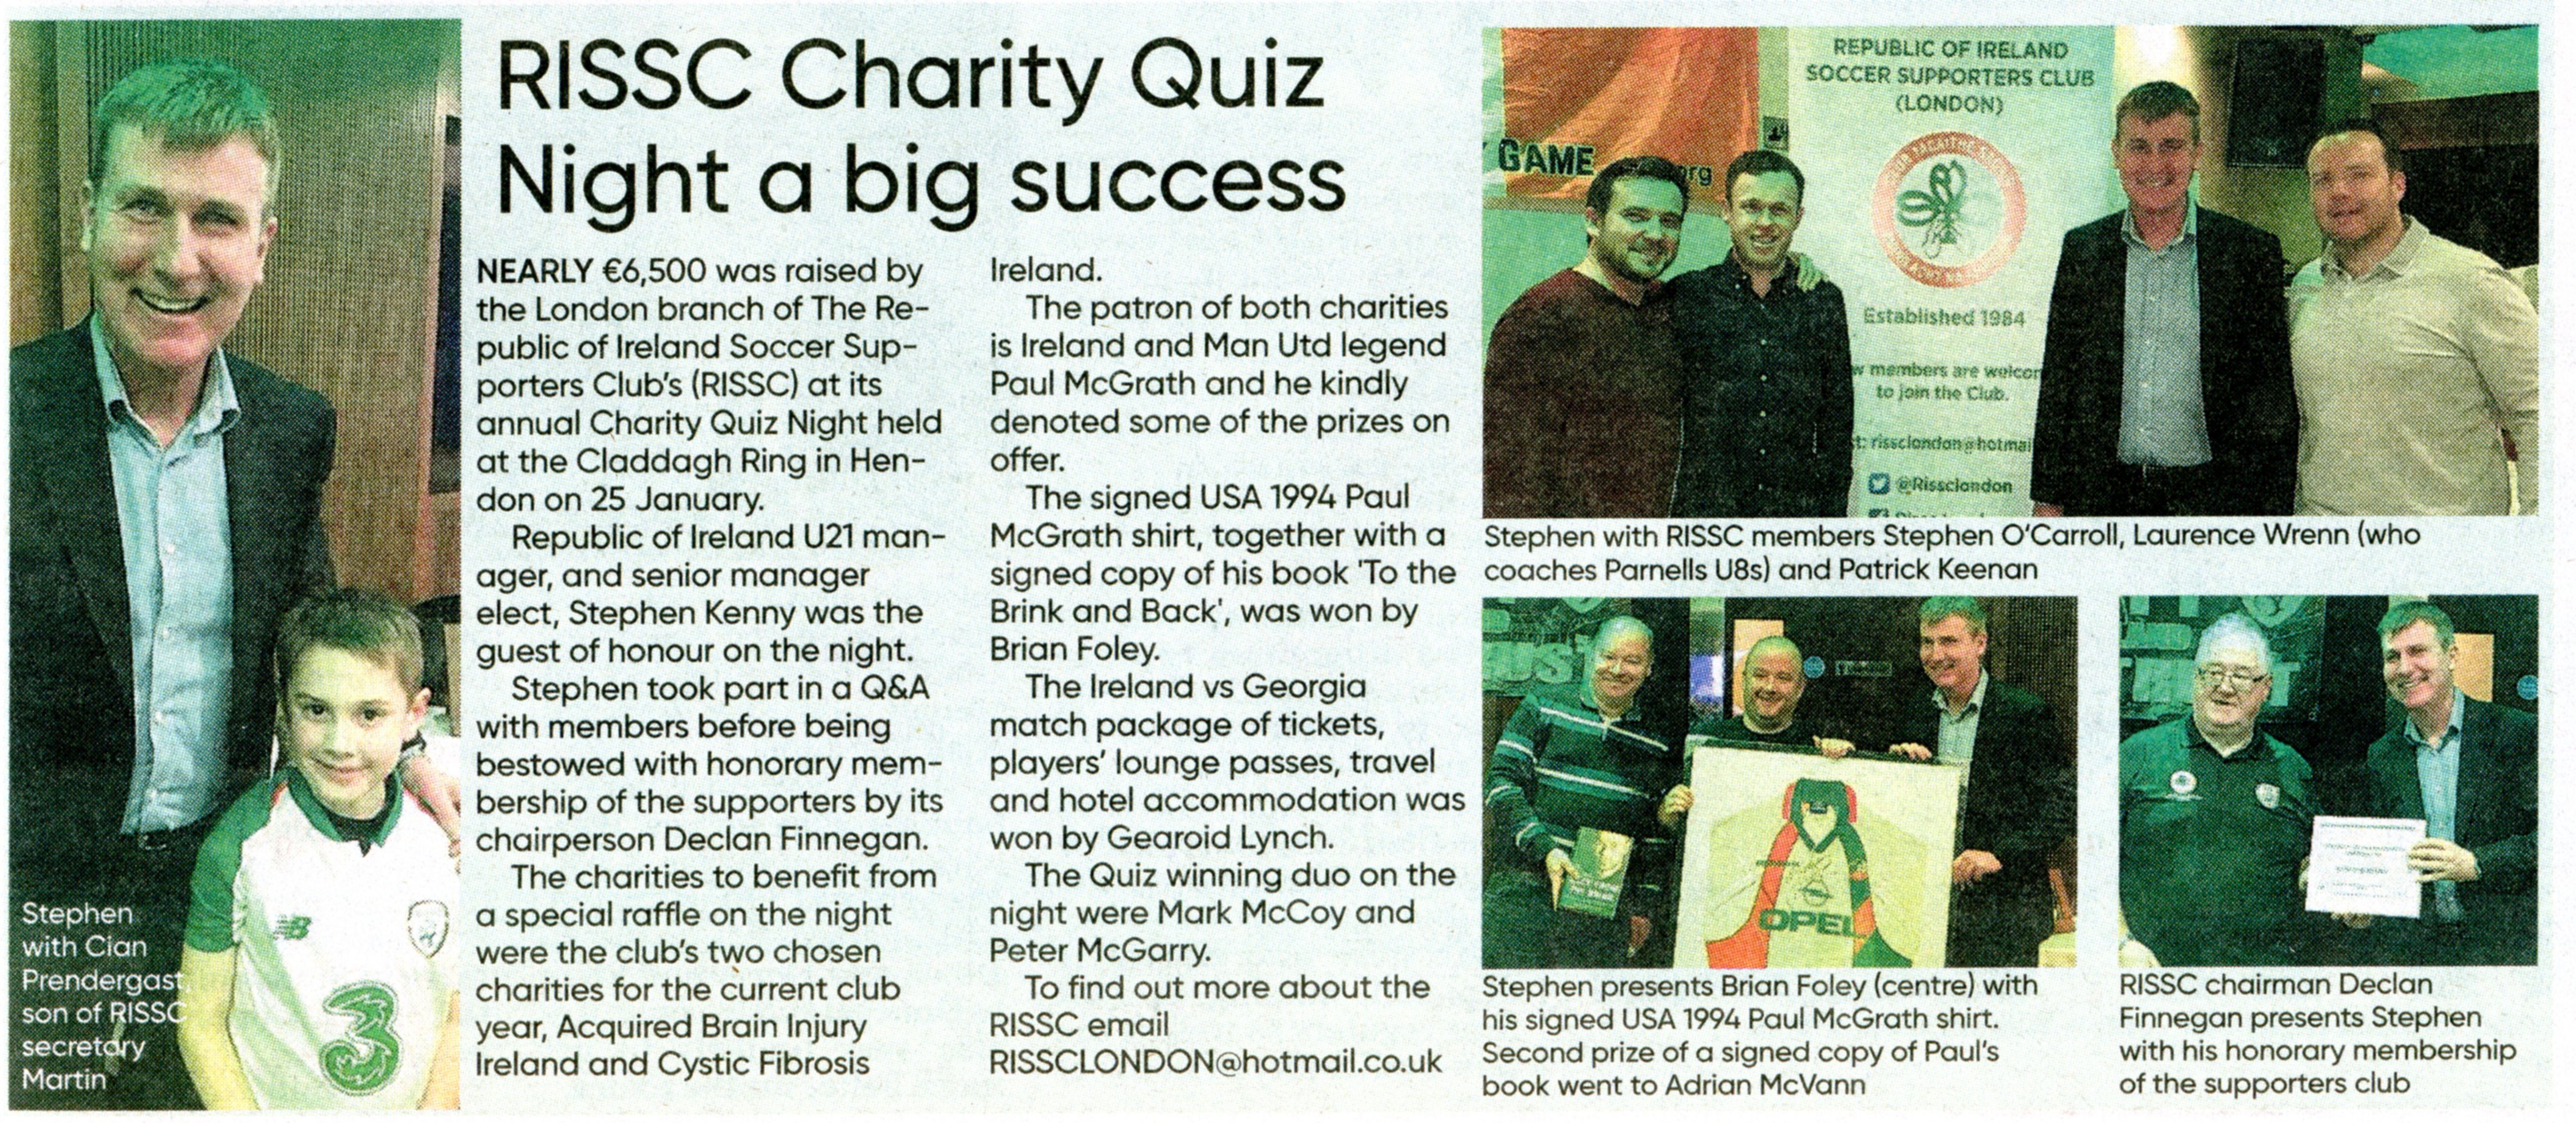 fecdac998f1bb Scan of The Irish World article reviewing the RISSC London January 2019  Charity Quiz & Meeting with stephen kenny